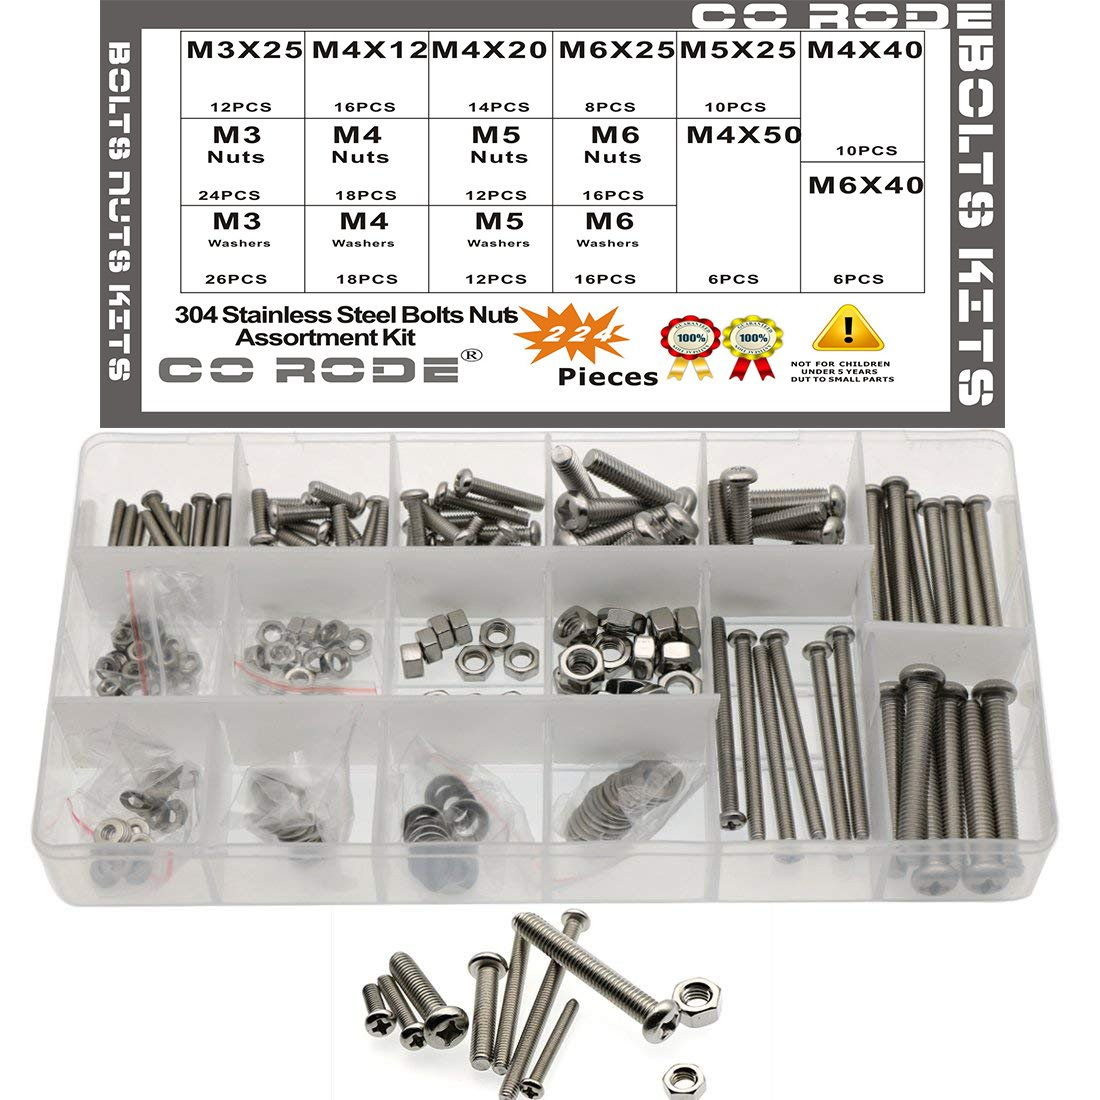 224pcs Stainless Steel Cross Recessed Pan Head Machine Screws Bolts Nuts with Flat Gaskets Kit